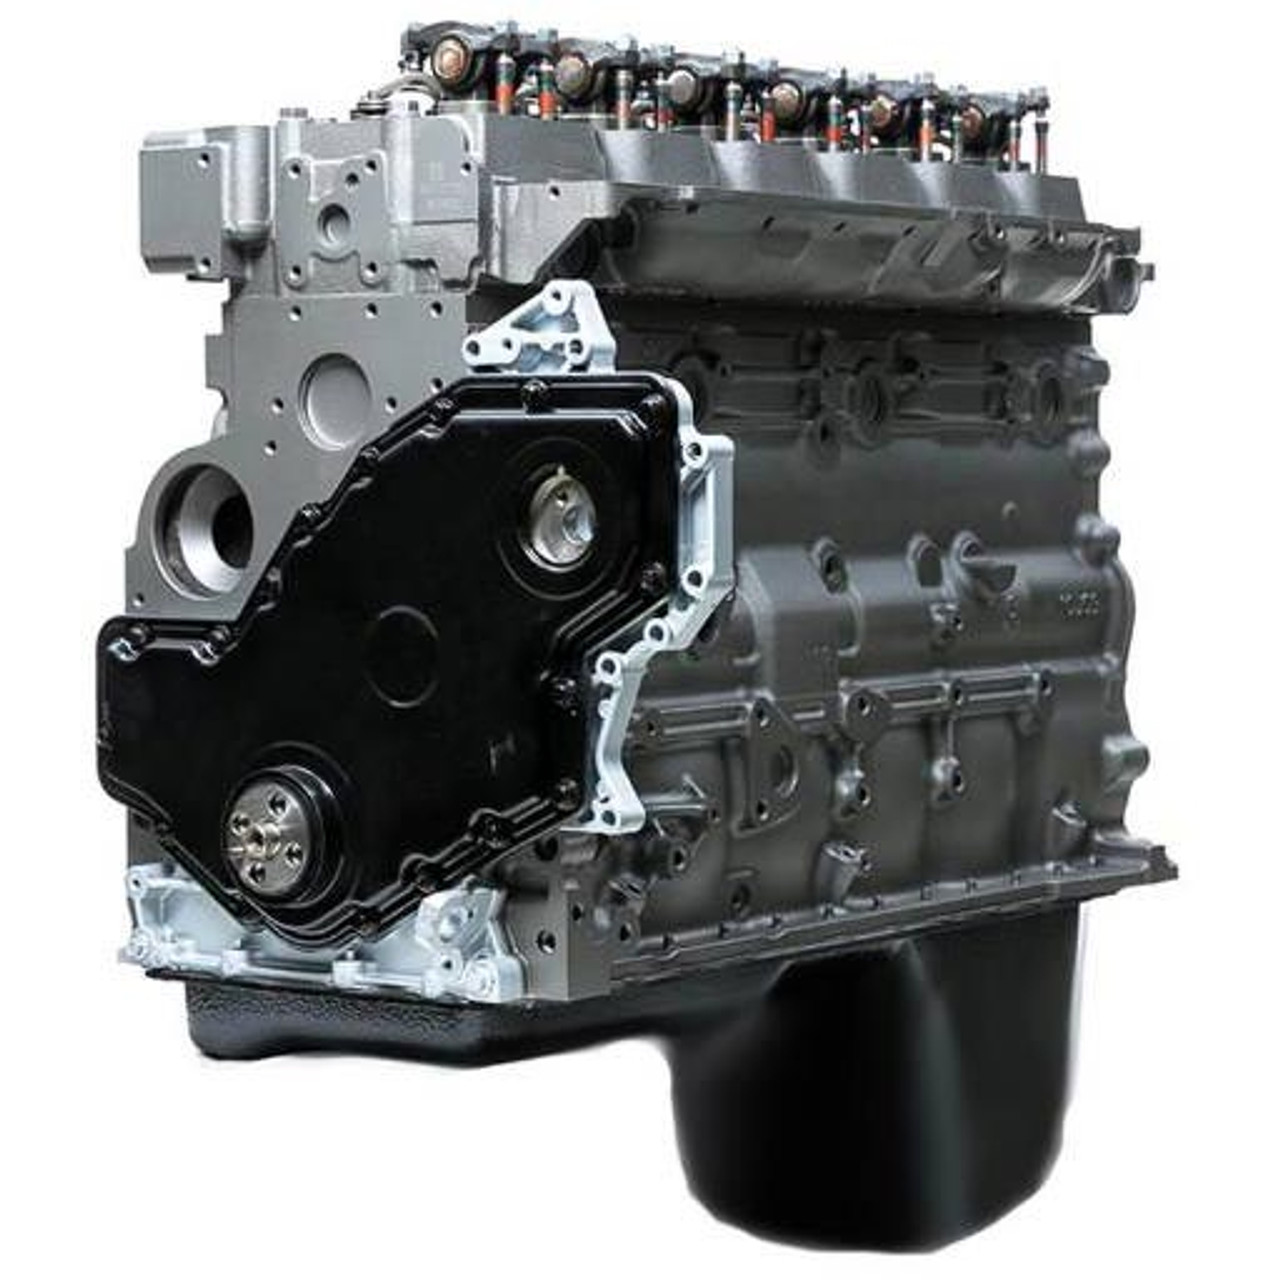 Dfc Remanufactured Long Block 04 5 07 Dodge 5 9 Cummins Diesel Engine Dfc04 07lb5 9